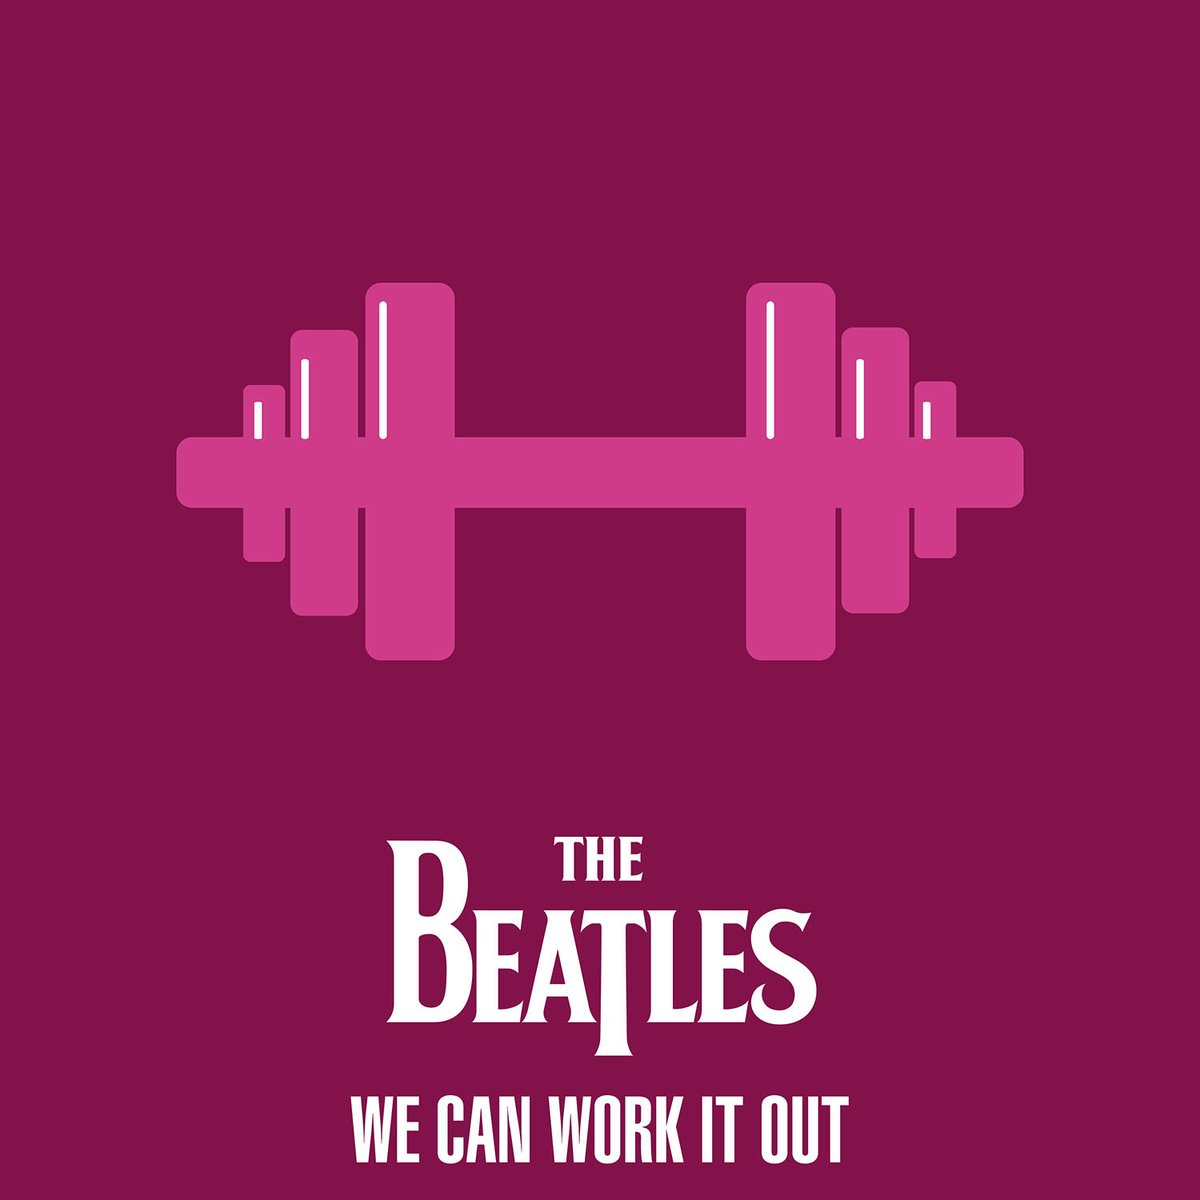 These days, it might feel a little harder than normal to get a proper exercise routine going but perhaps We Can Work It Out - with some help from our new playlist. What Beatles songs do you like working out to?